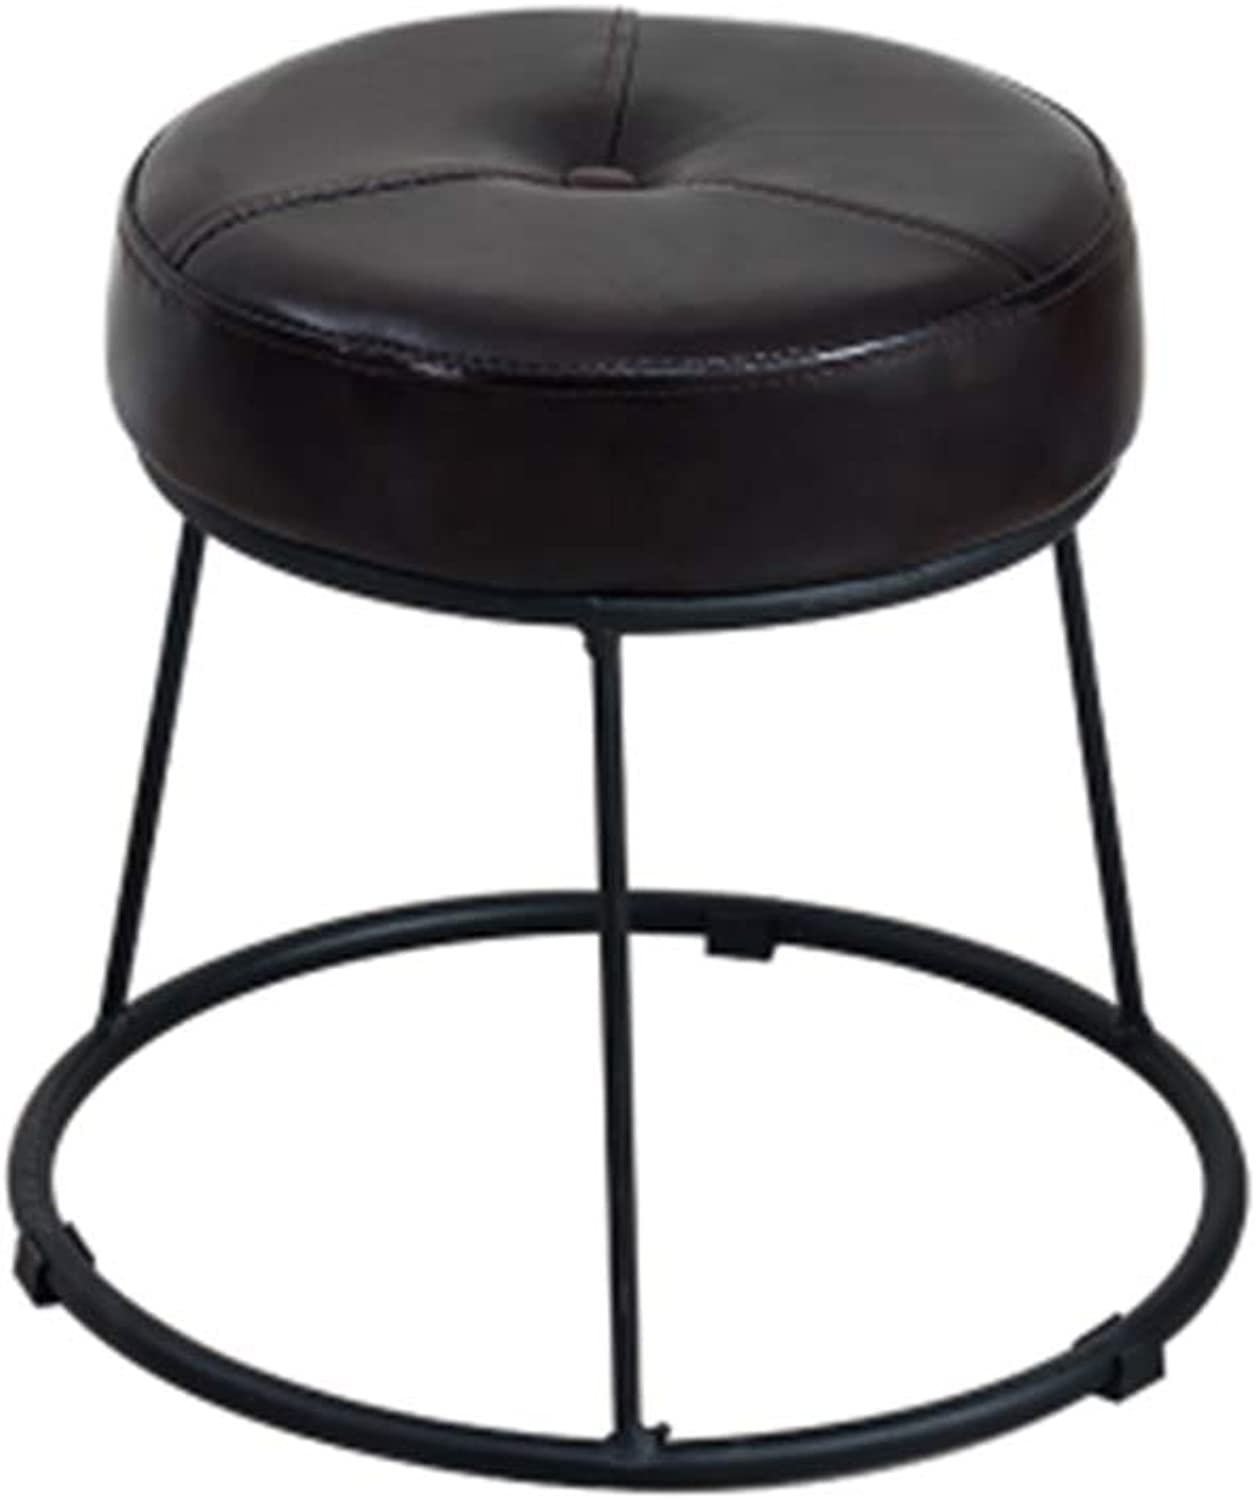 WY Iron Stool, Dining Table Stool Sofa Stool Small Round Stool Modern PU Low Stool Bench Furniture (color   Black, Size   S)